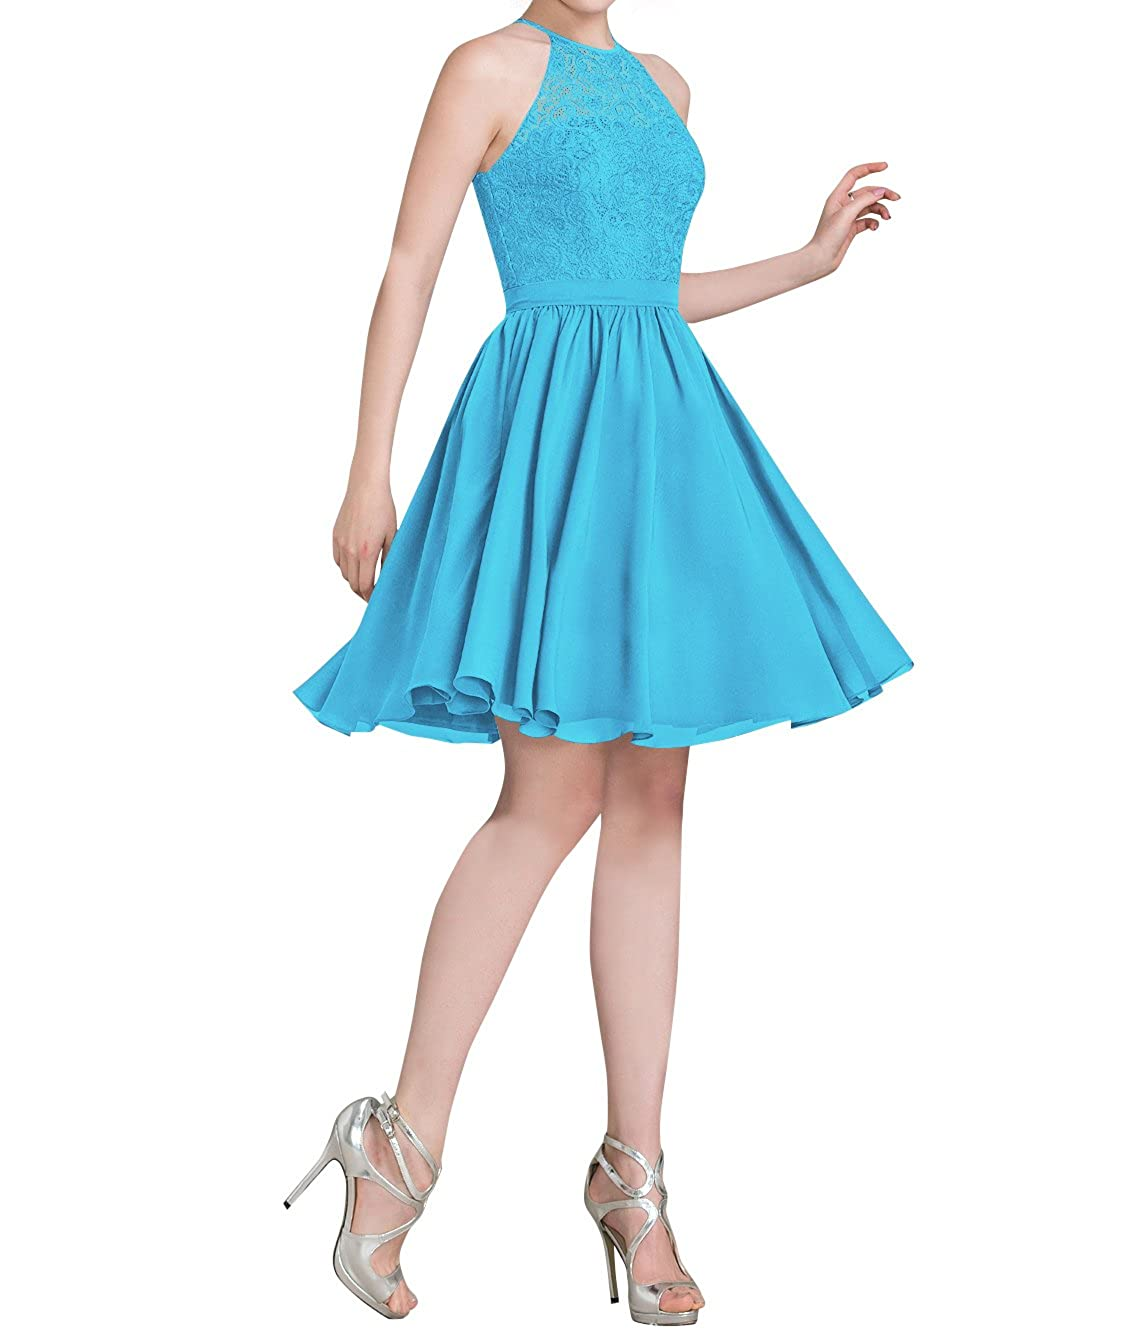 c3e12bb8c56 Amazon.com  Loffy Women s Halter Short Homecoming Dress Beading Tulle Prom  Dress  Clothing